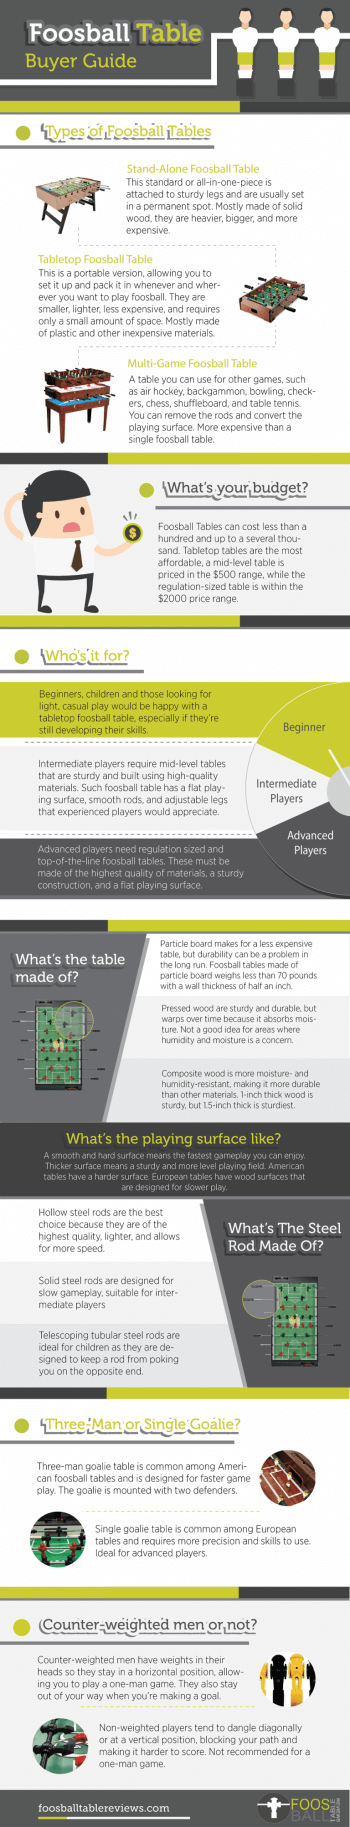 Foosball Table Buying Guide Infographic